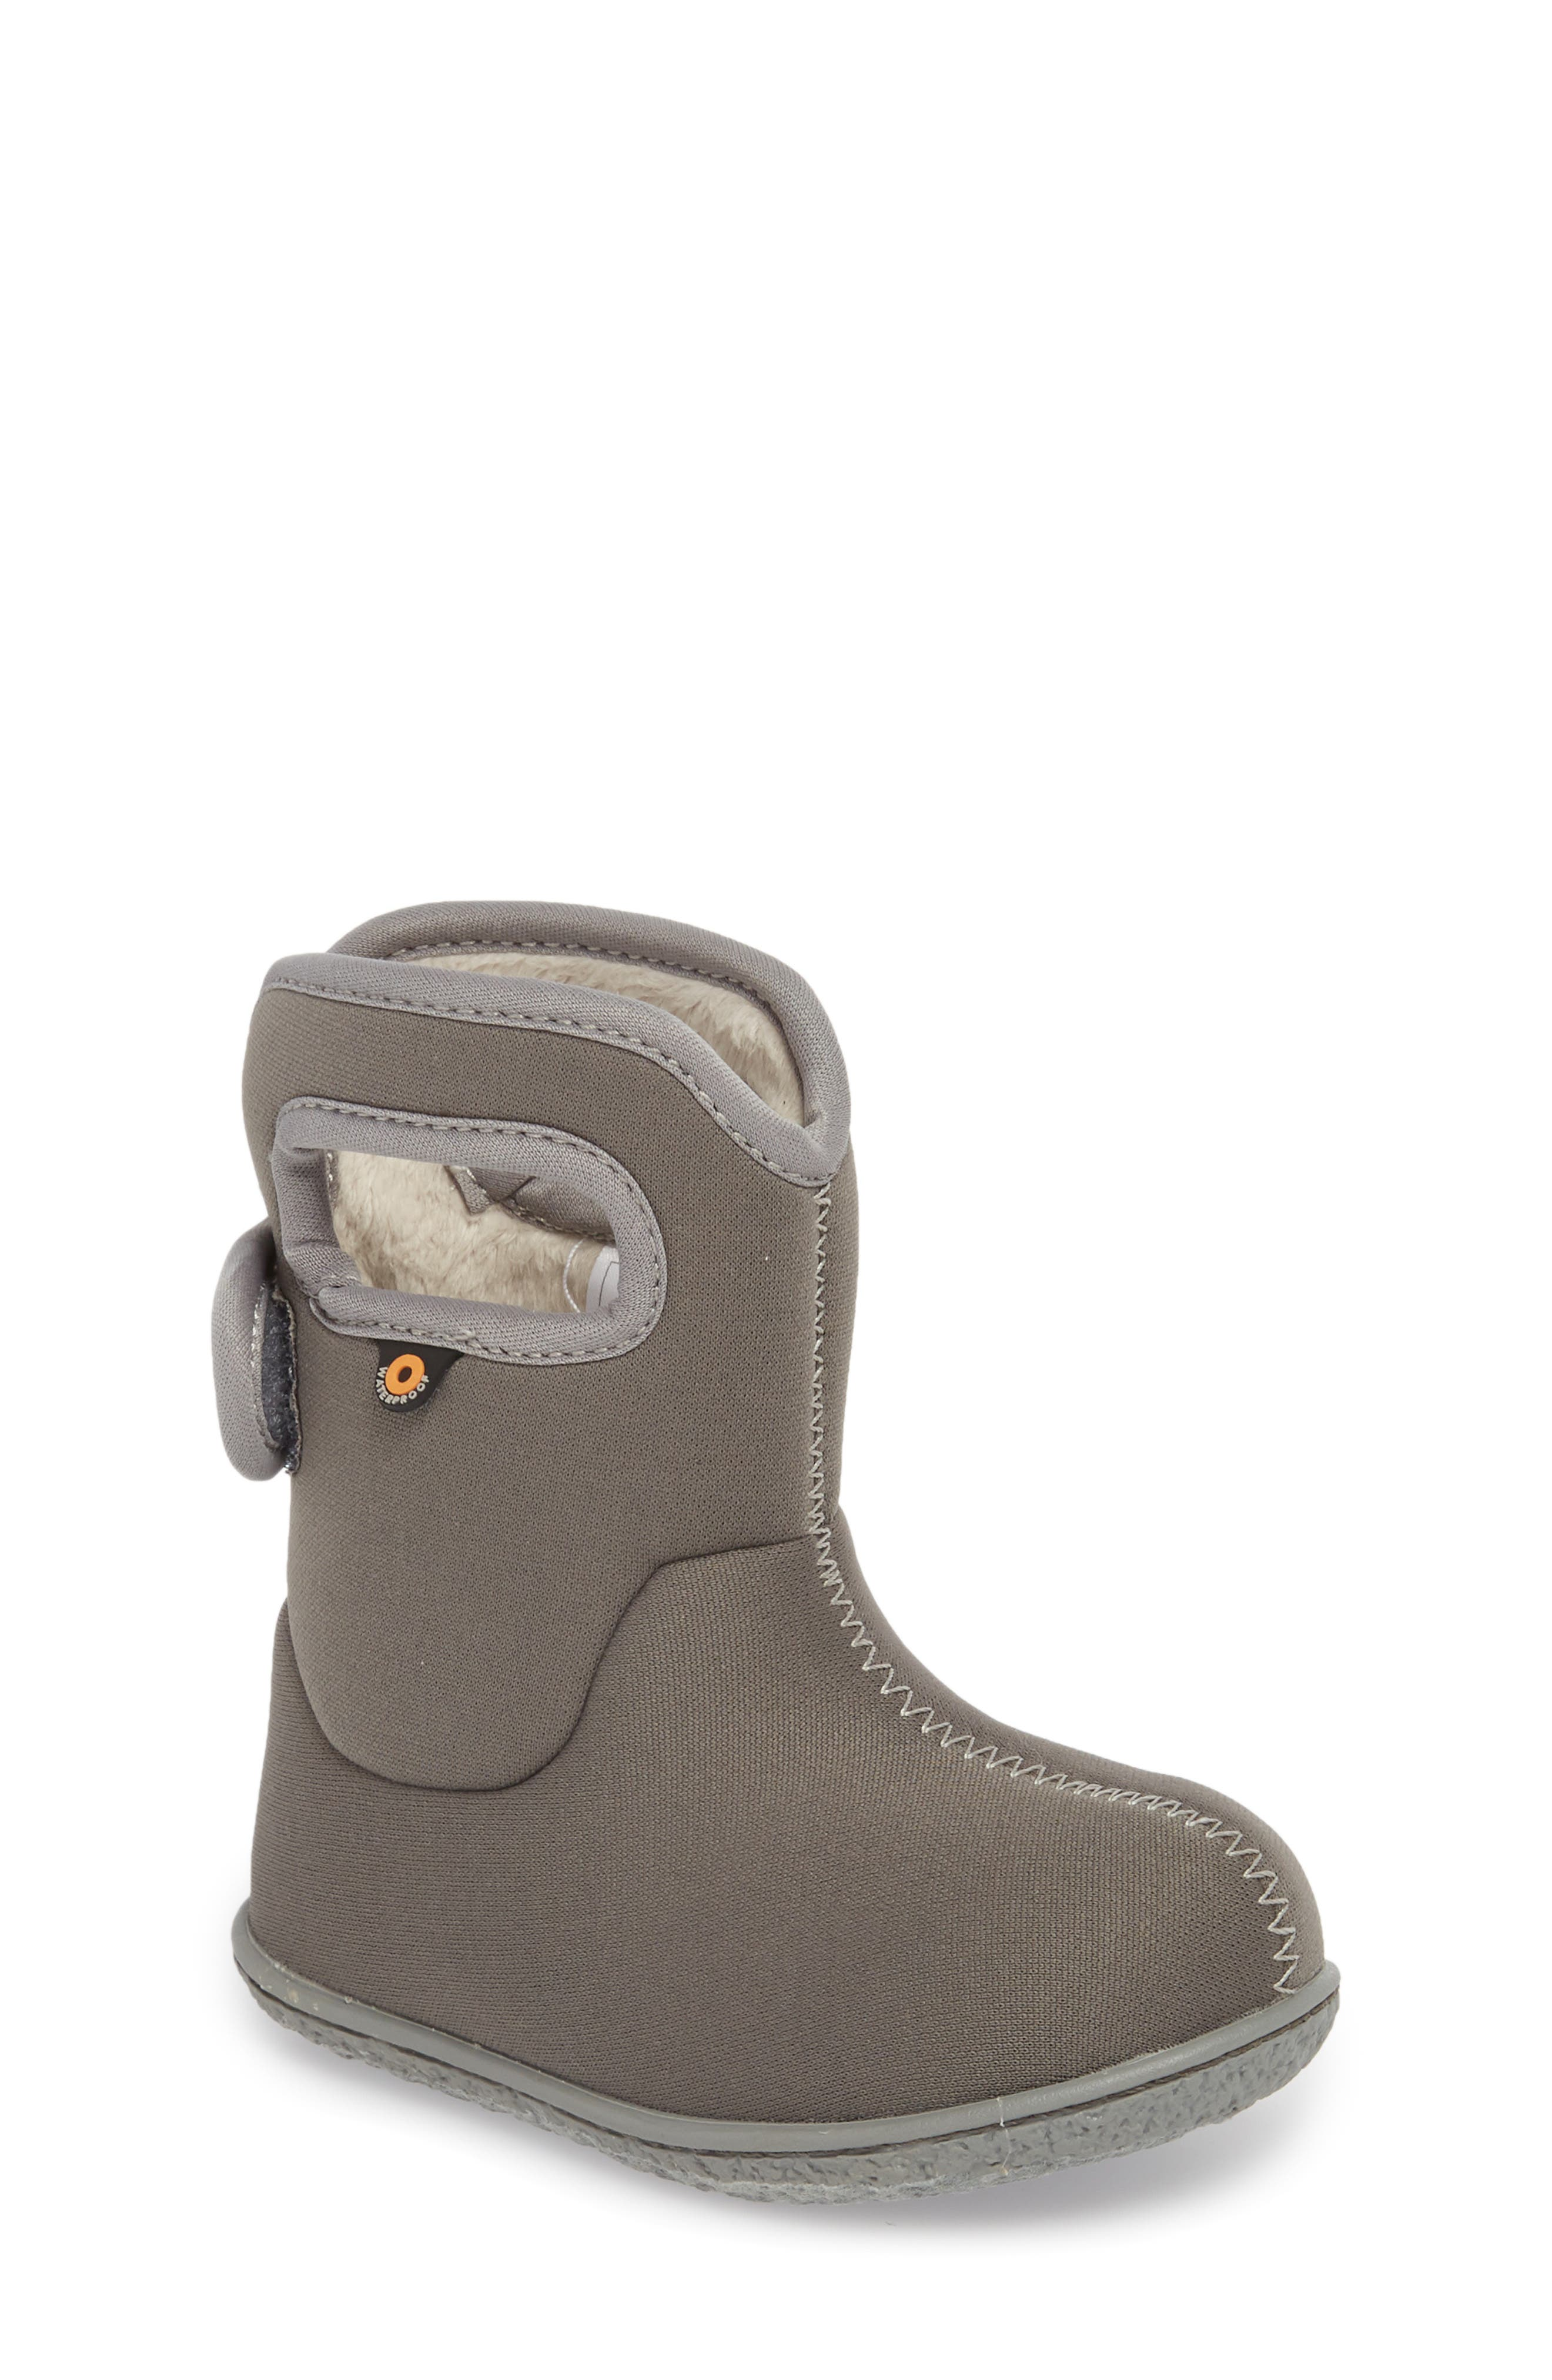 Classic Solid Insulated Waterproof Rain Boot,                             Main thumbnail 1, color,                             Light Gray Multi